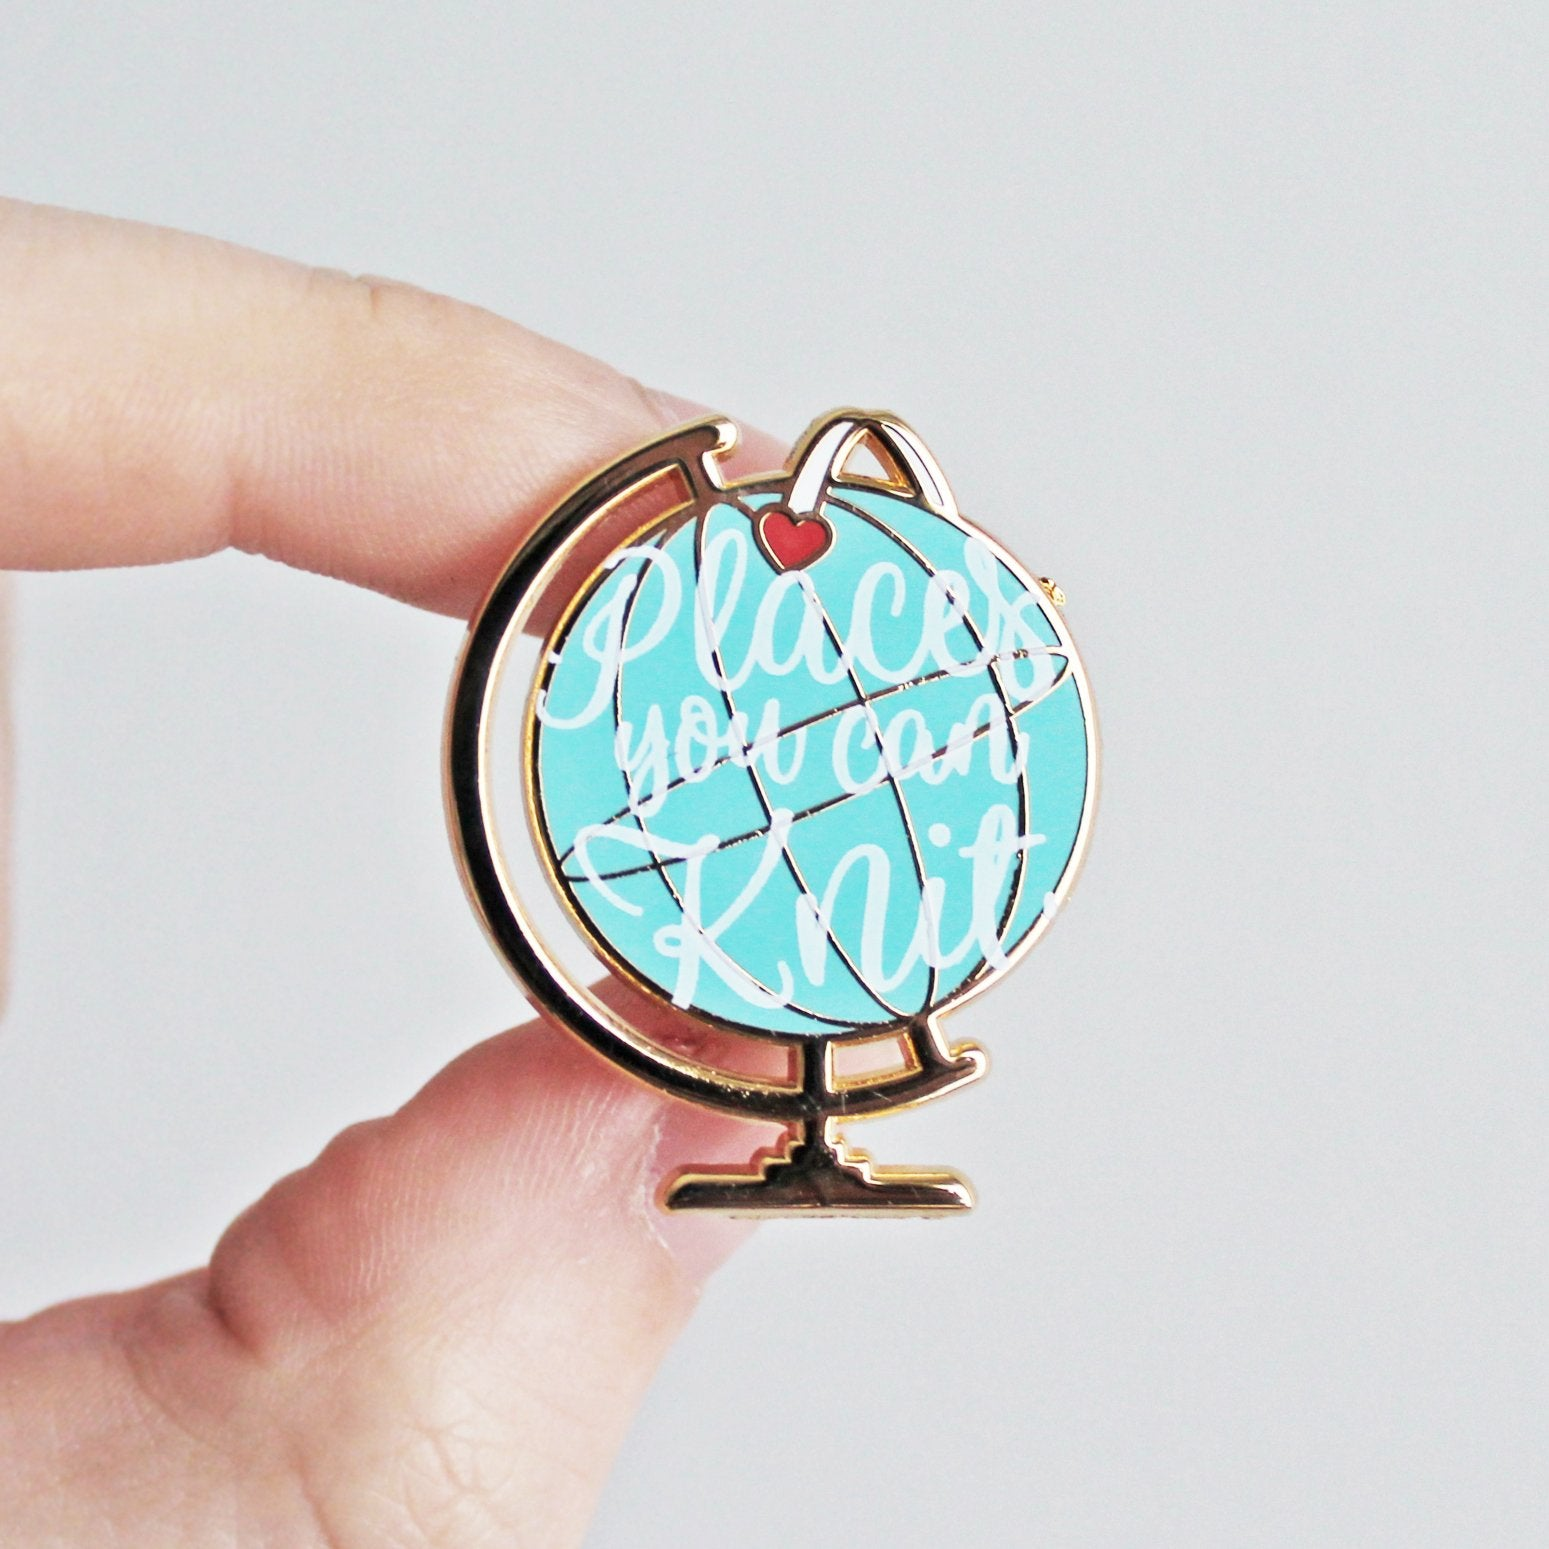 *Places You Can Knit Enamel Pin *Seconds